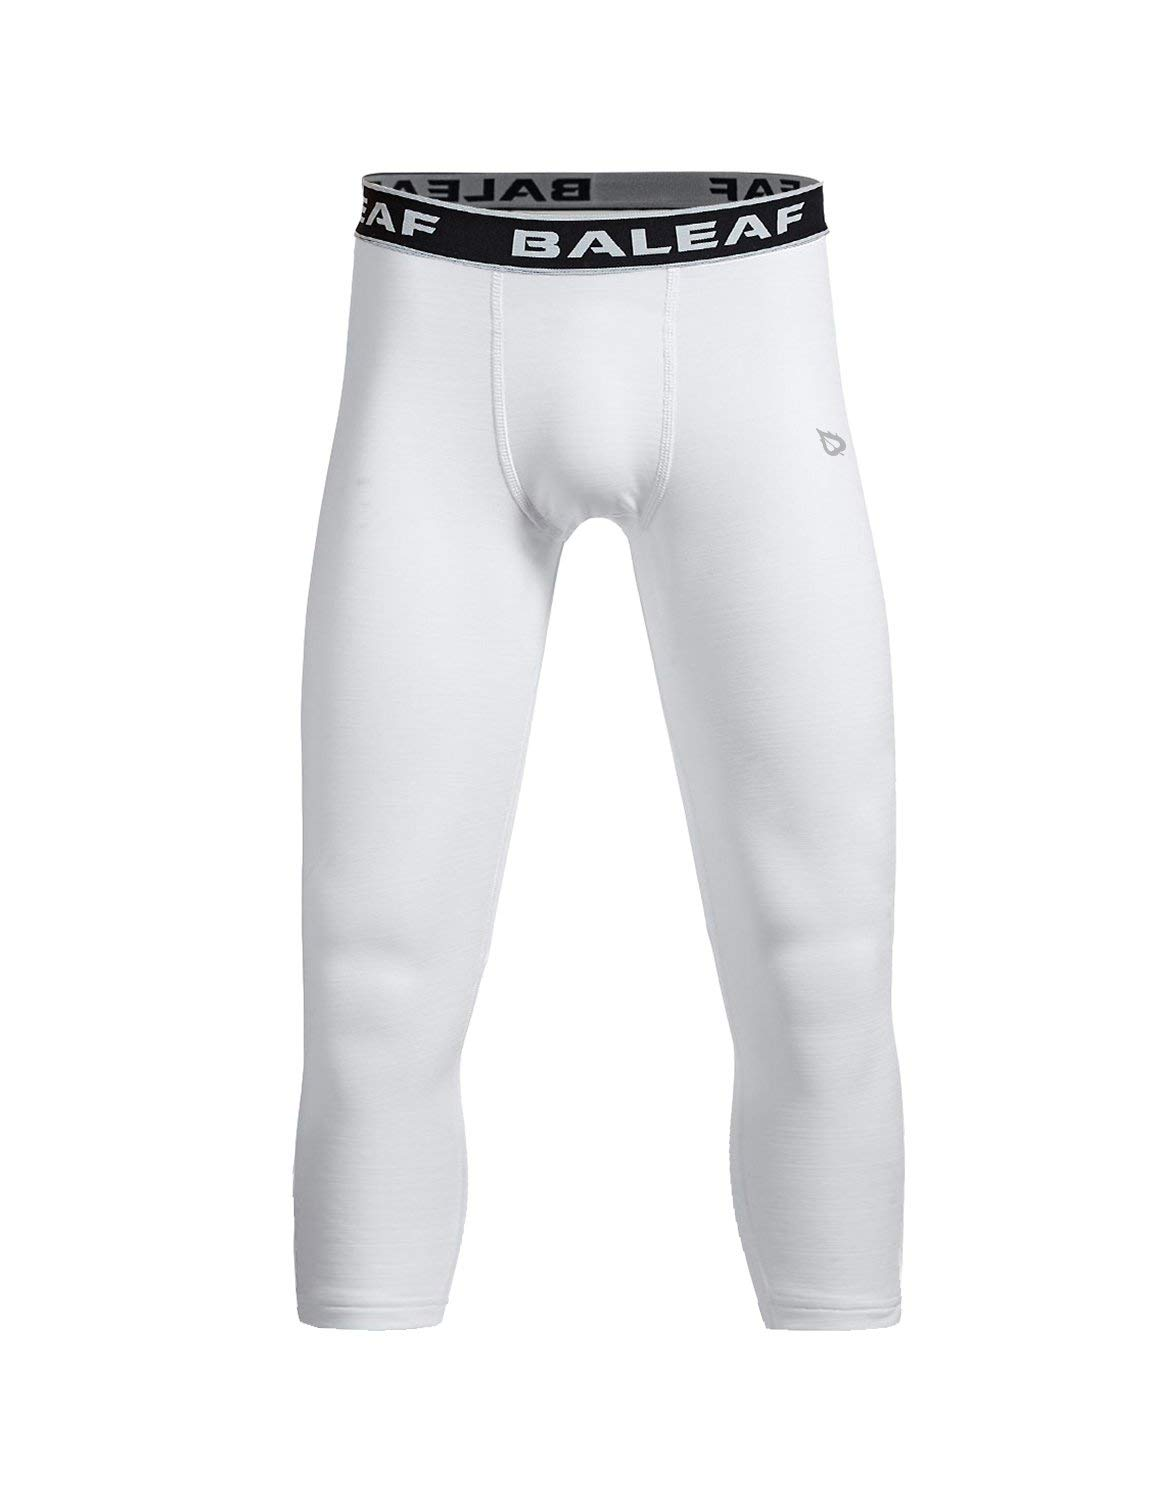 BALEAF Youth Boys' Compression Pants 3/4 Leggings Sports Tights Football Basketball Baselayer White Size M by BALEAF